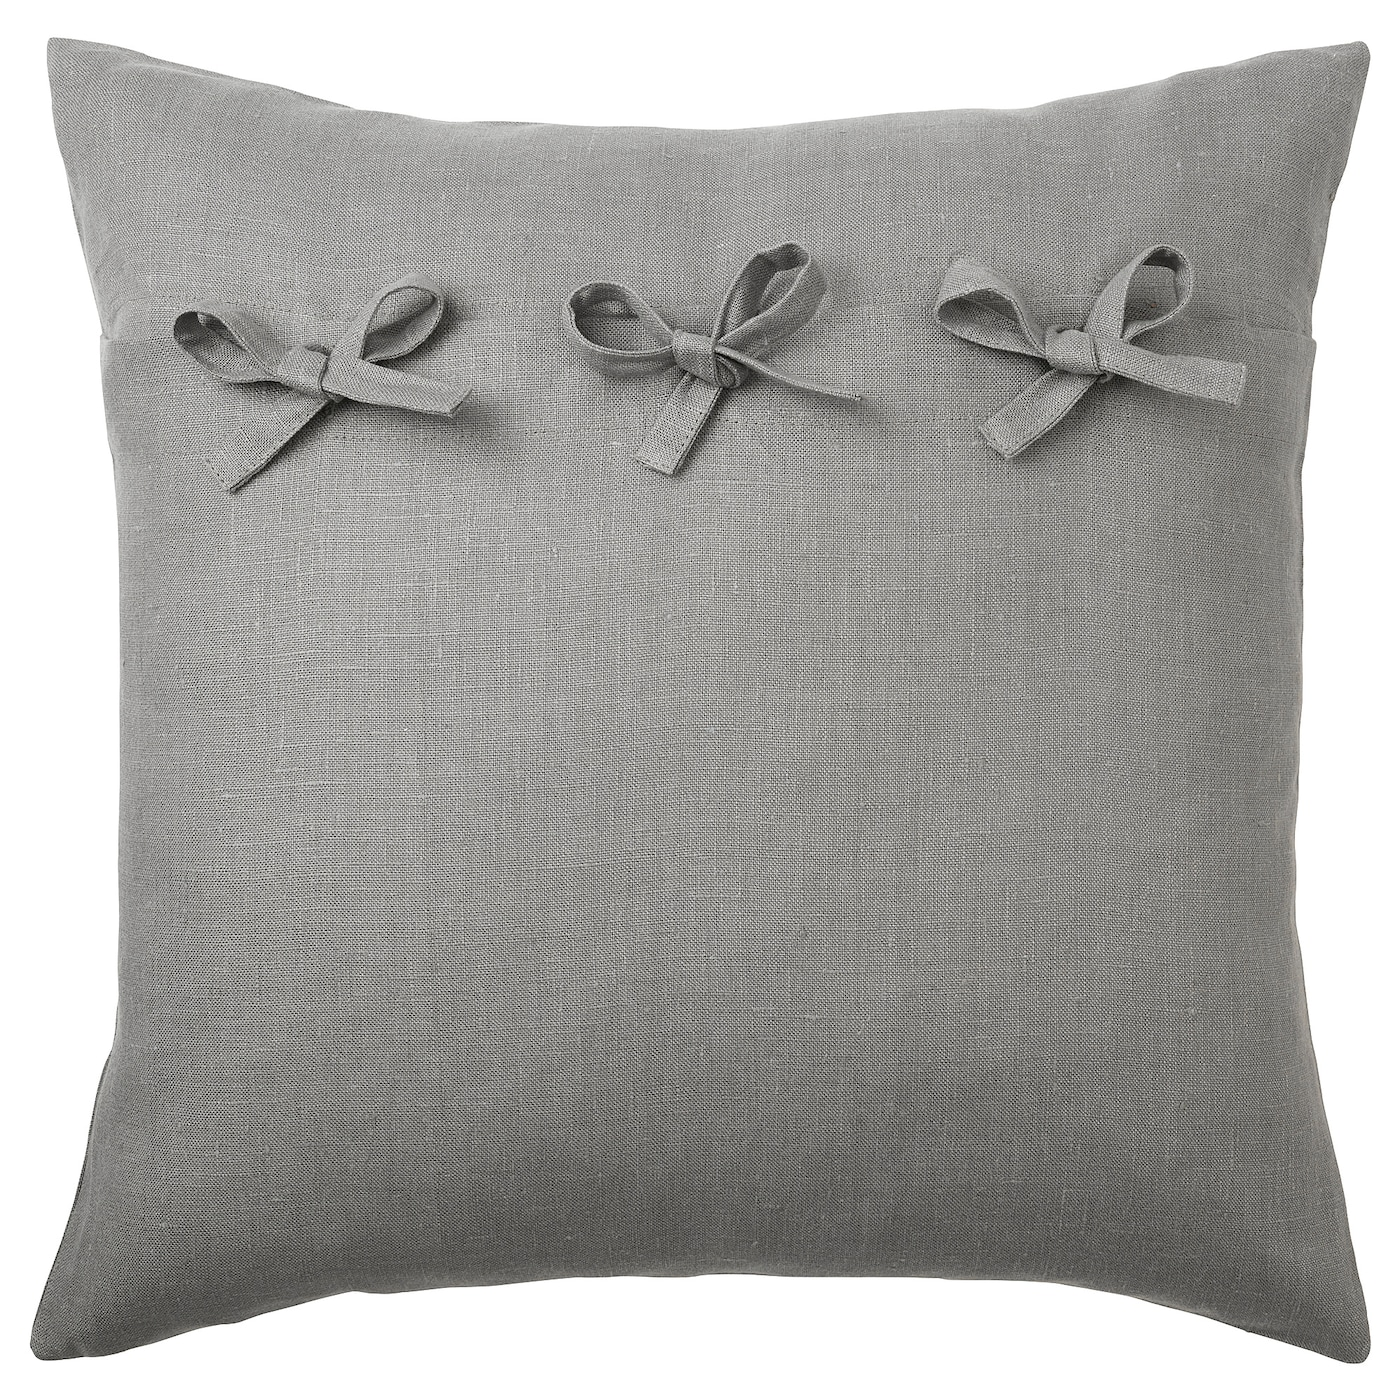 IKEA AINA cushion cover The ties make the cover easy to remove and adds a decorative detail.